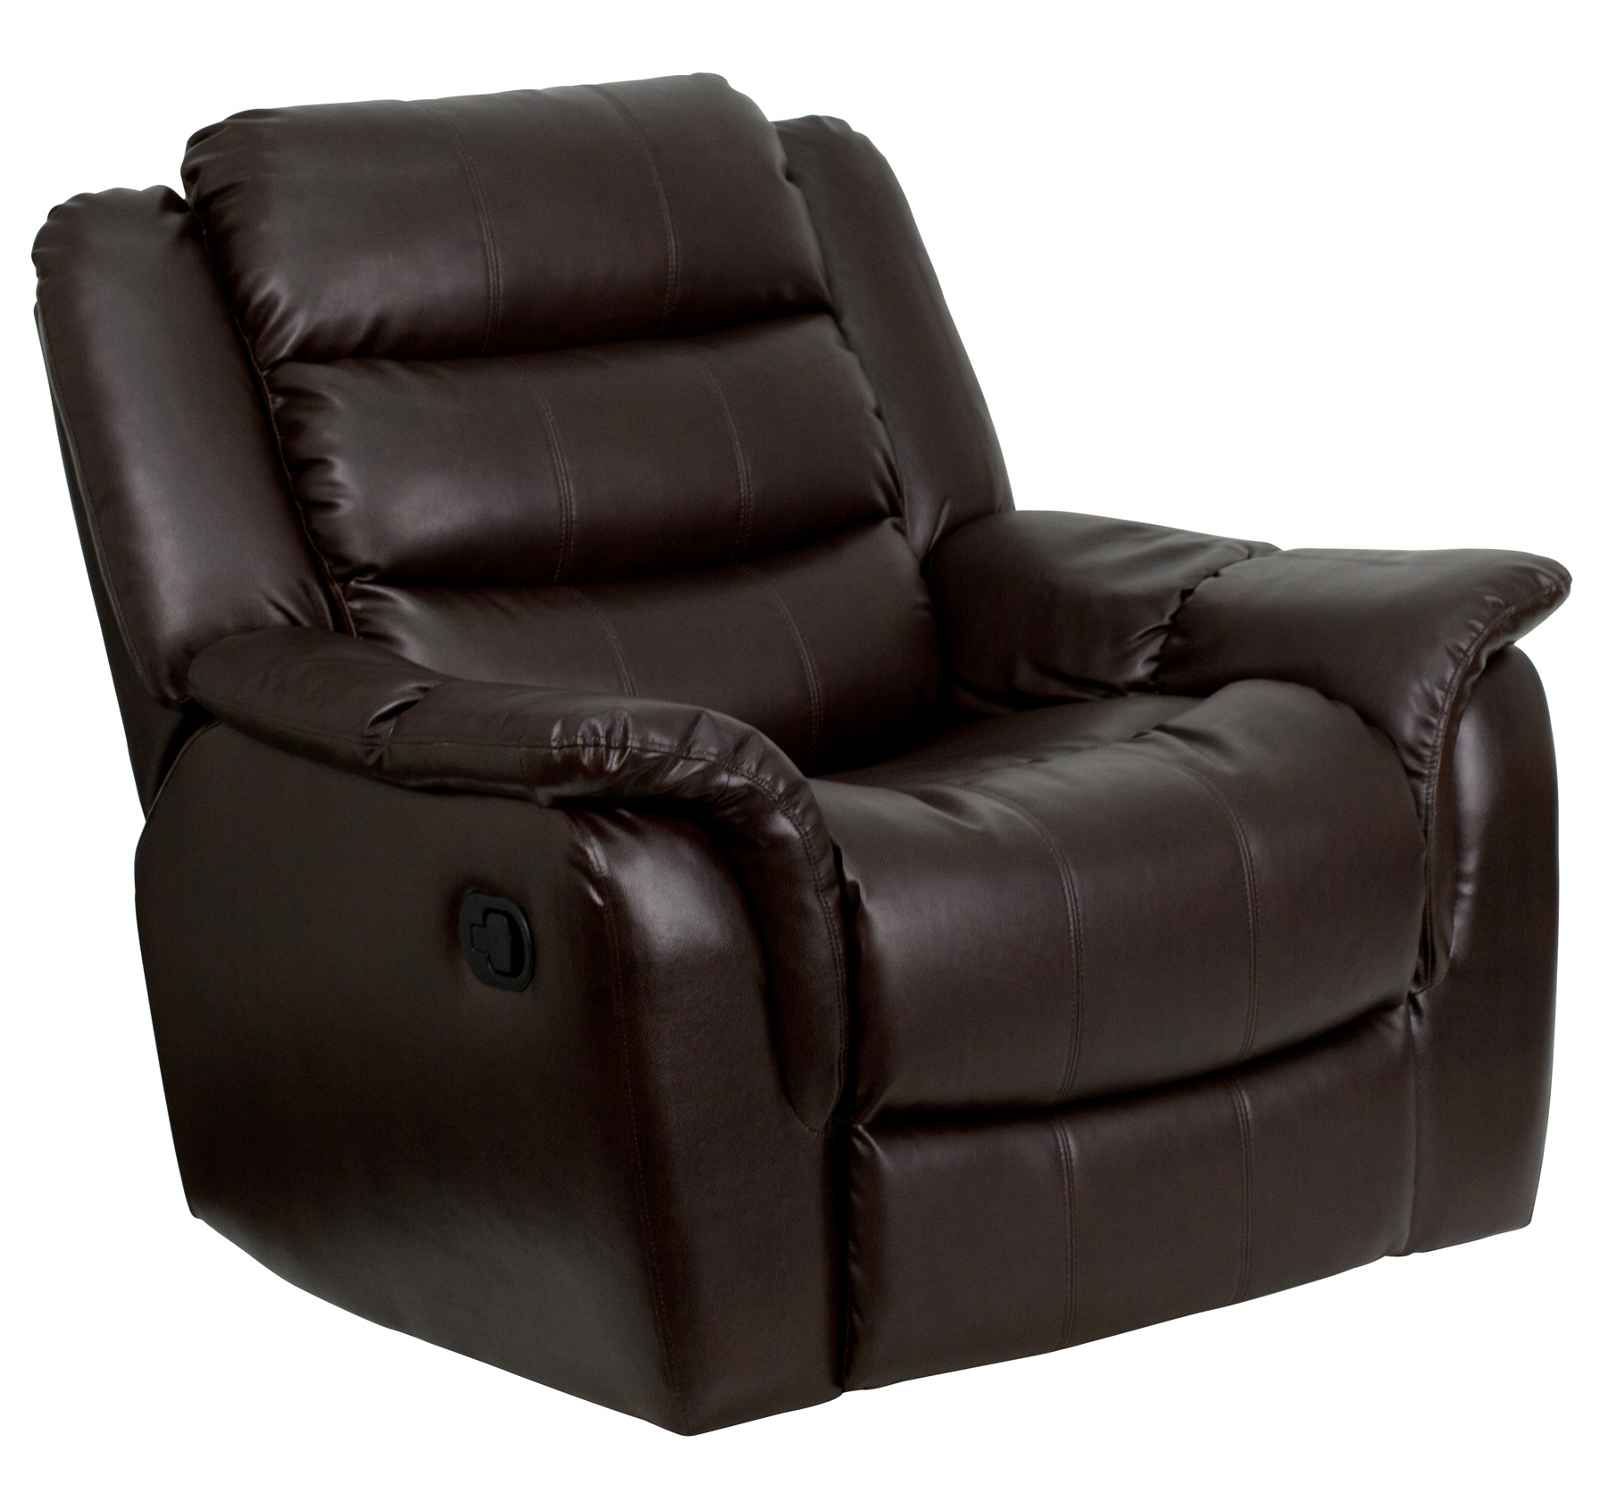 Cheap Massage Chairs Walmart Feel The Home